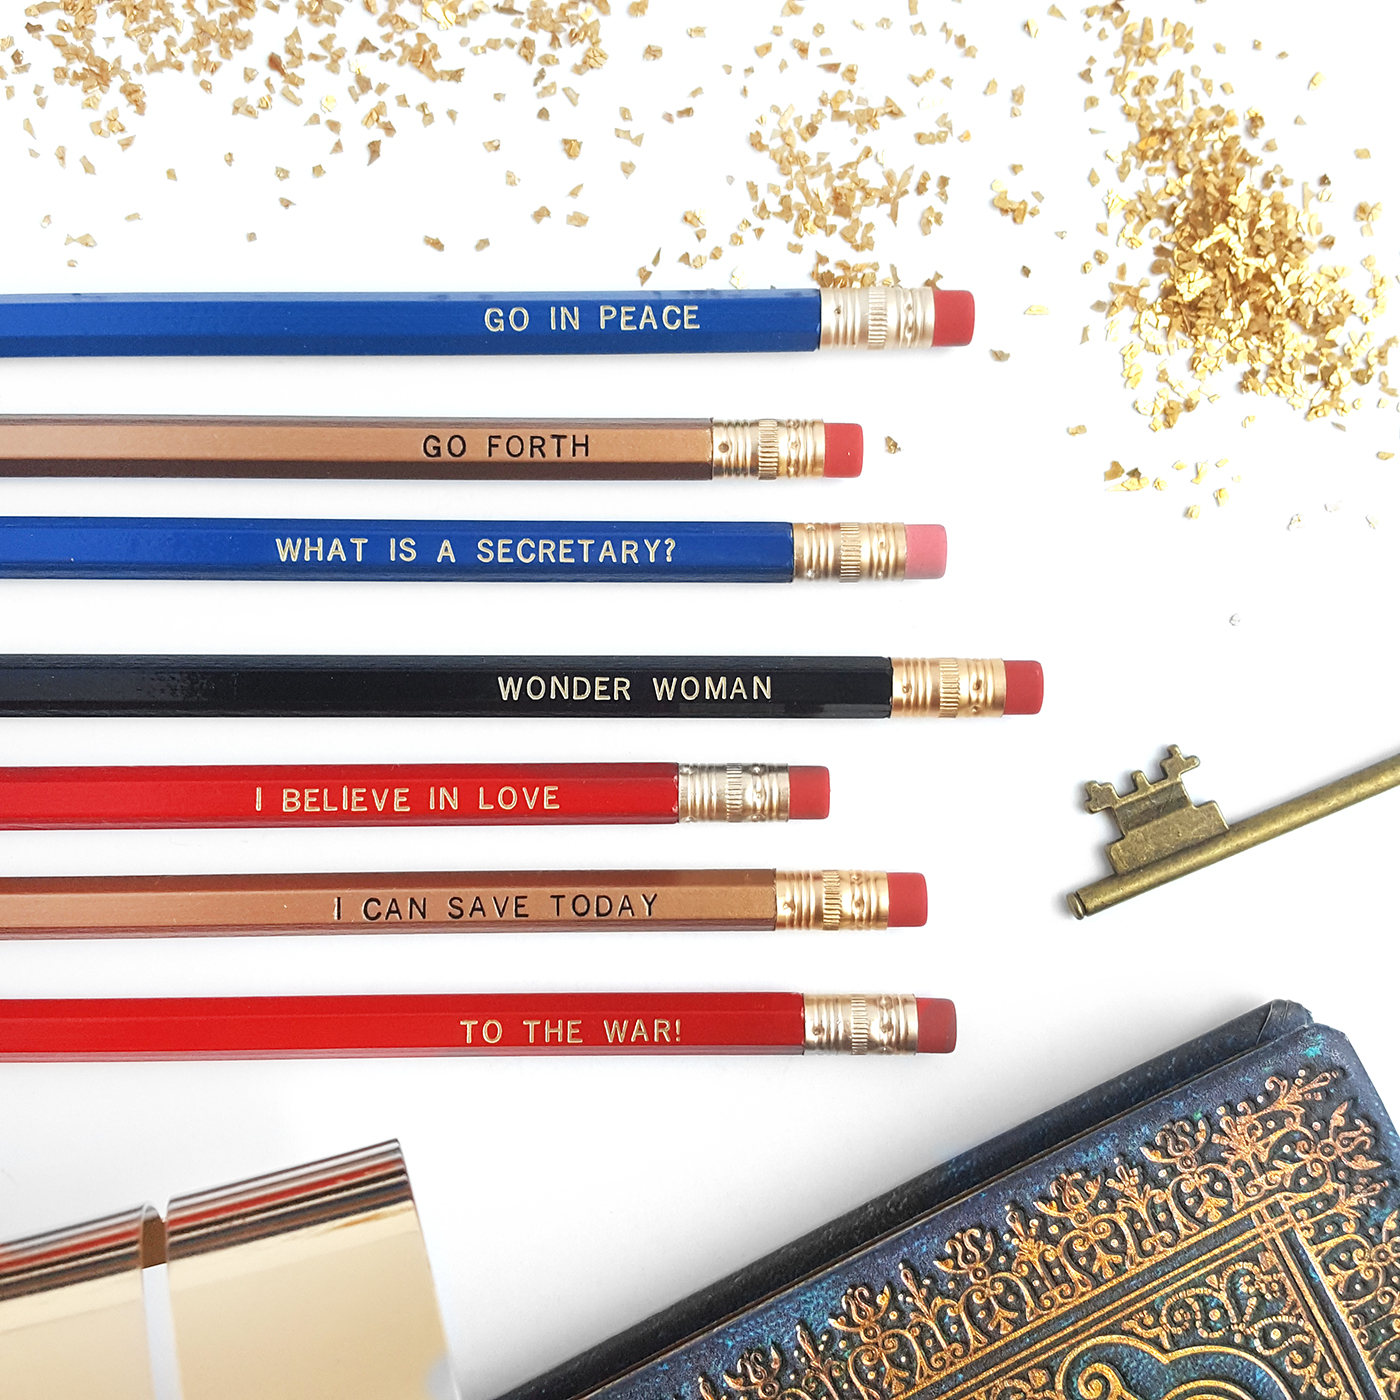 Wonder Woman Pencil Set by Icey Designs on Etsy | Cool Wonder Woman Gear | Back to School Shopping Guide 2017